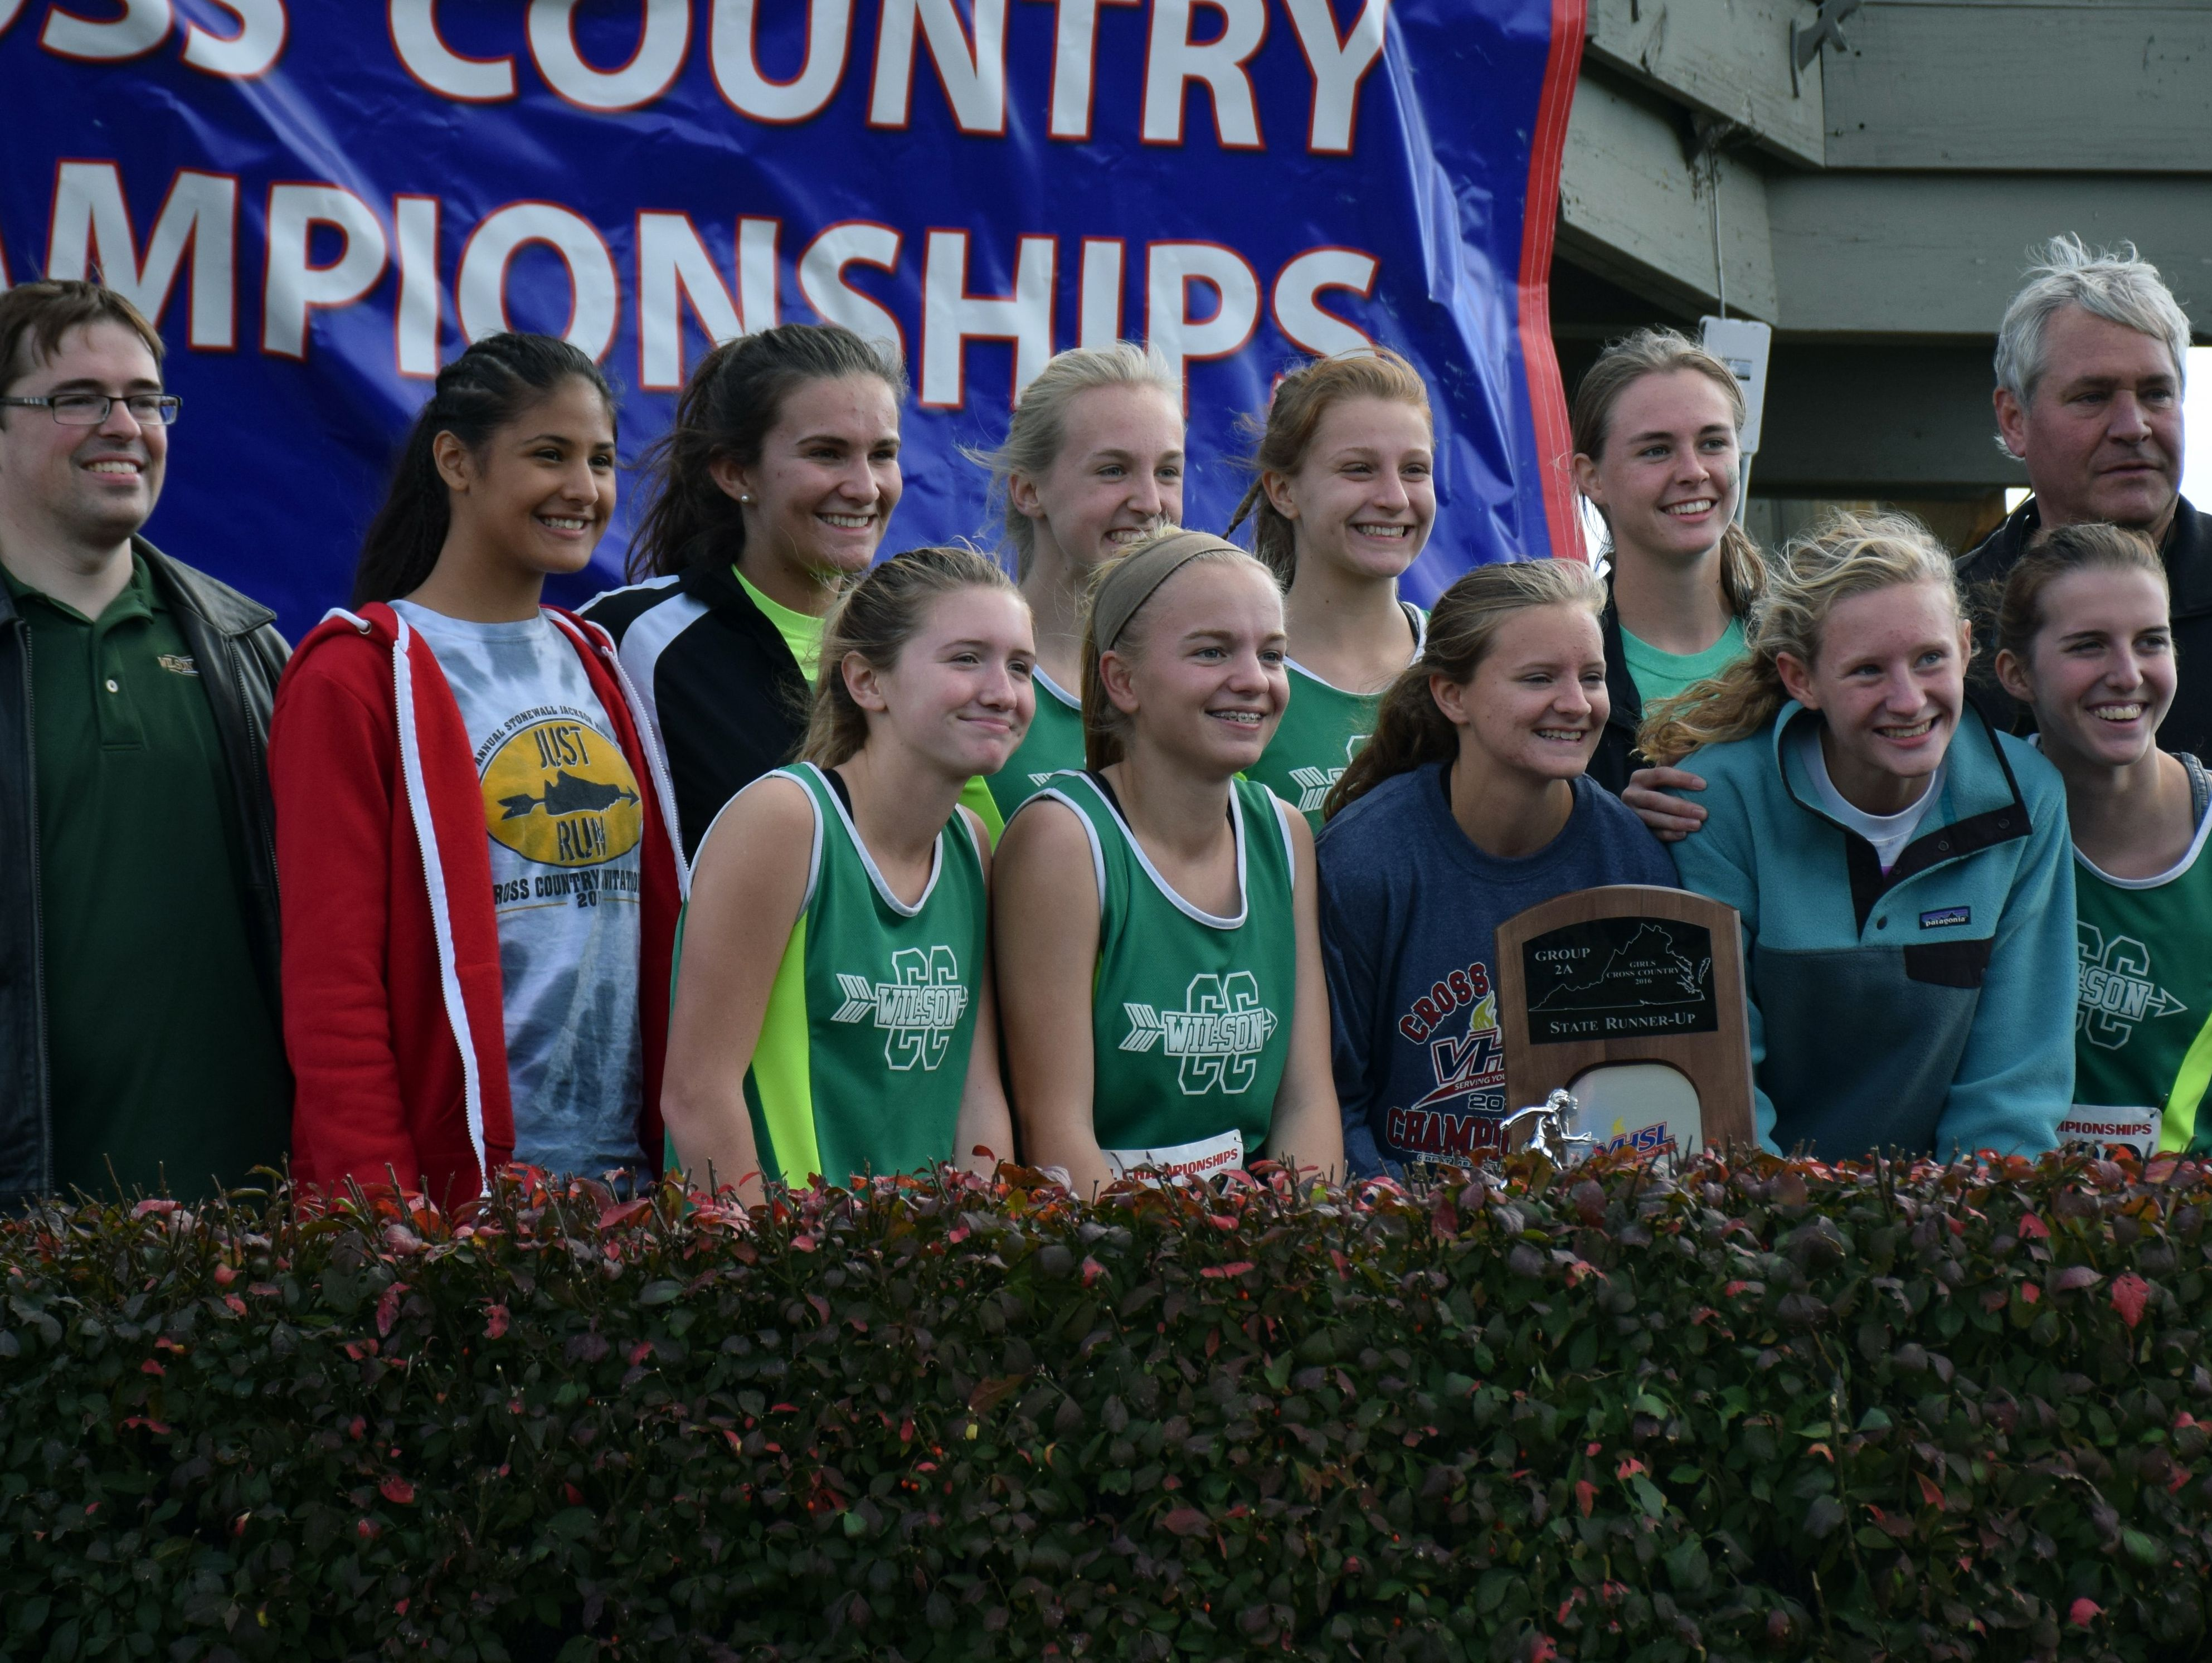 Members of Wilson Memorial's girls team pose with the trophy they received for placing second in the Group 2A girls race at the VHSL cross country championships at Great Meadow in The Plains on Friday, Nov. 11, 2016.